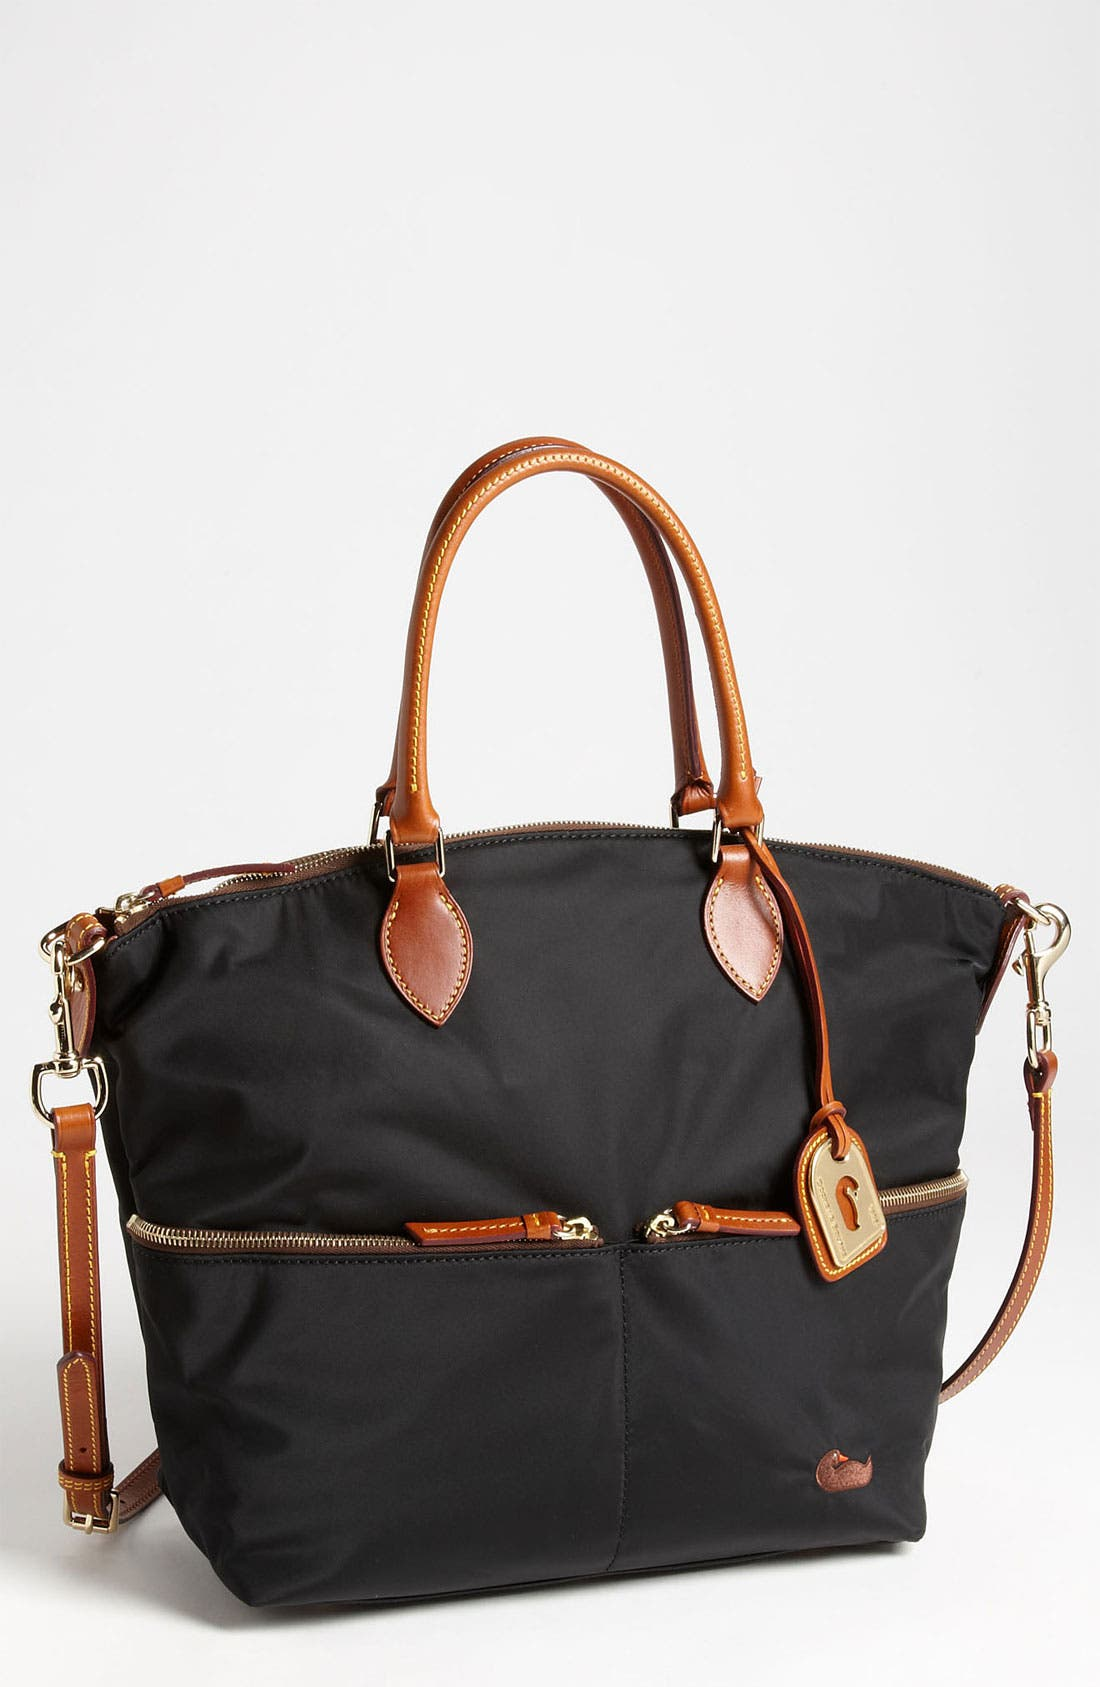 Main Image - Dooney & Bourke 'Zip Sac' Nylon Satchel